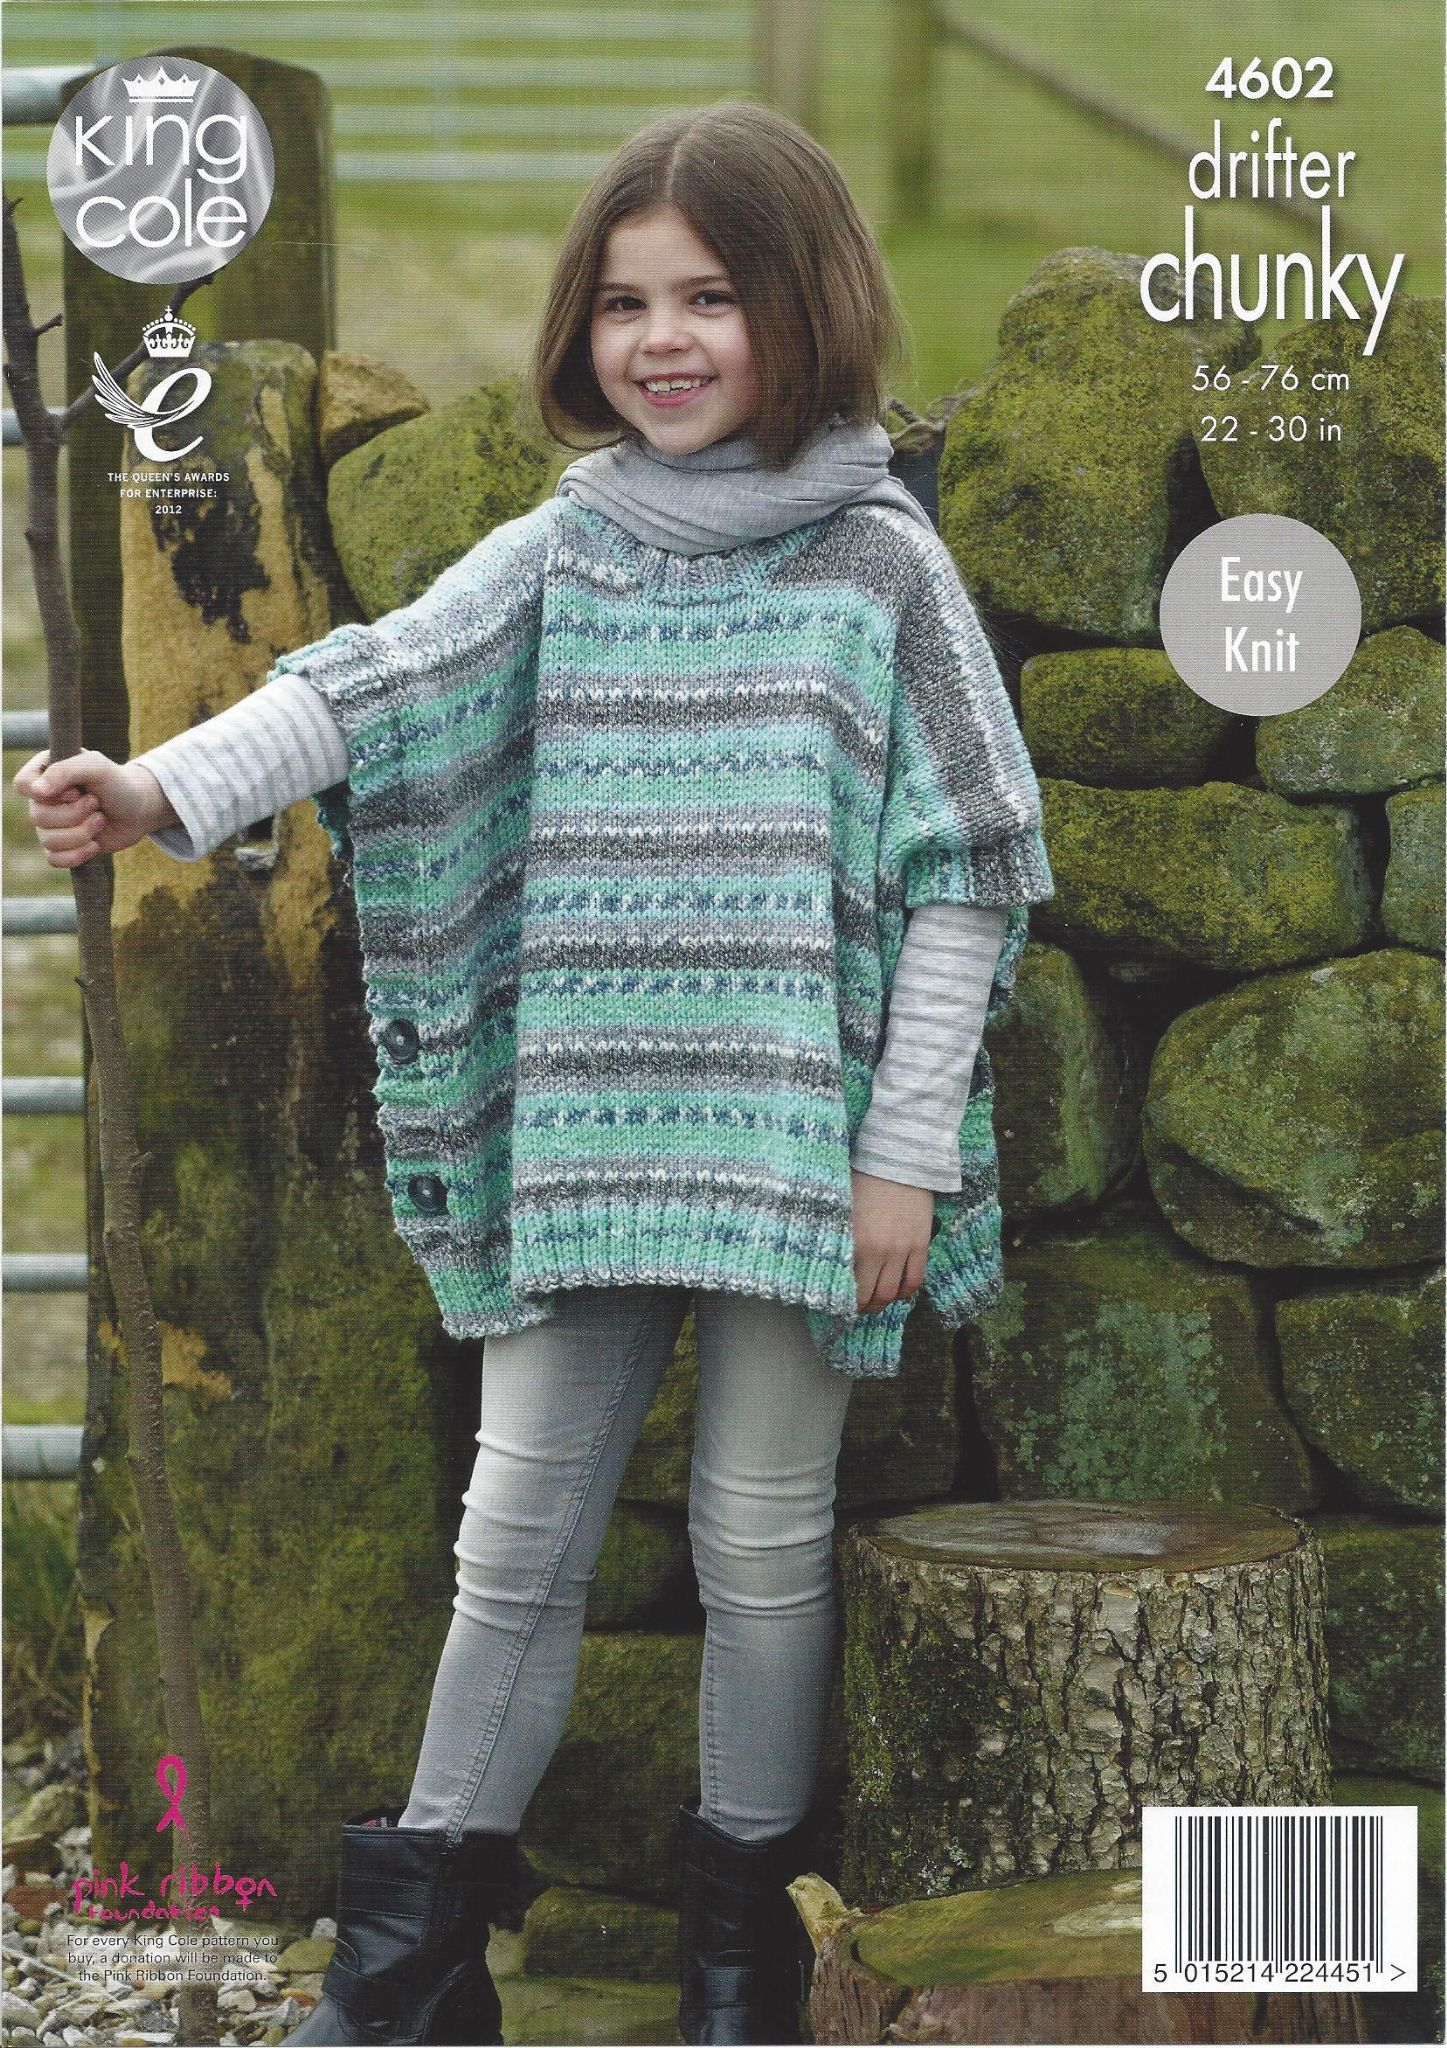 King Cole Drifter Chunky 4602 Poncho Knitting Pattern